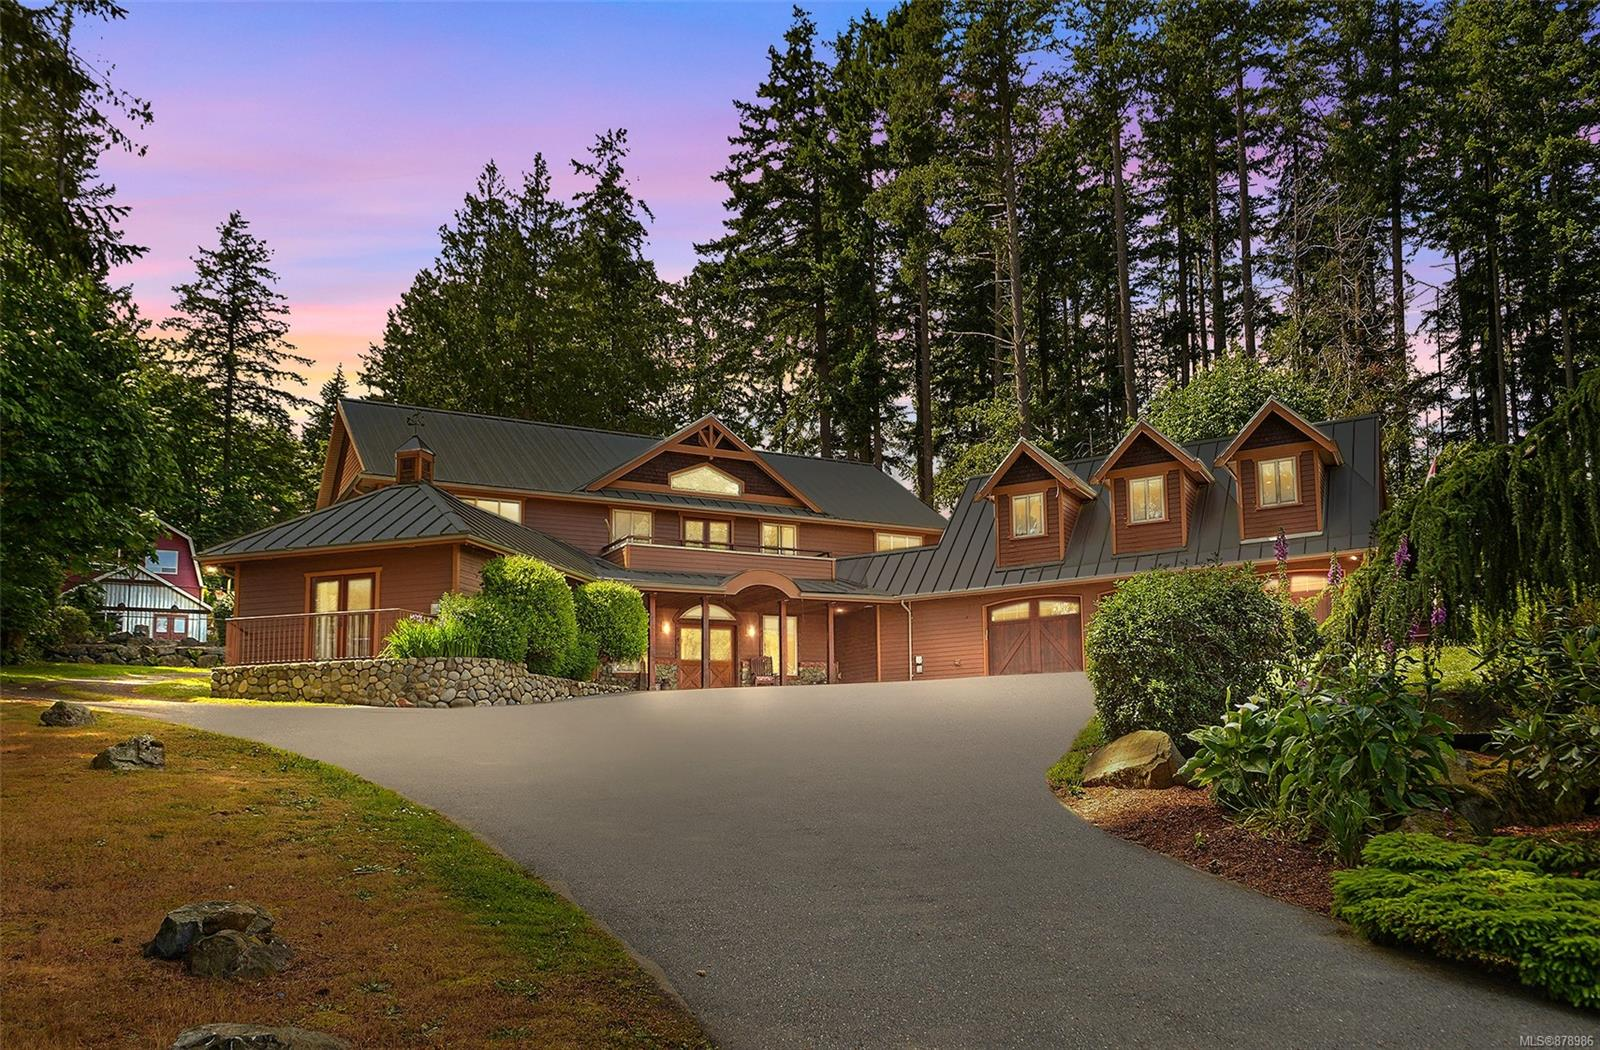 VIRTUAL O/H--> HD VIDEO, 3D WALK-THRU, DRONE, PHOTOS & FLOOR PLAN online. Amazing opportunity to own this spectacular one of a kind Cordova Bay upscale acreage! Over 7200sqft finished. 7bdrms, 7bthrms, 7FP's, 3 kitchens, dual access points to property, this rare offering is a must see! Sprawled over 1.44acres of pure tranquil peaceful living w/mountain/ocean glimpses from various points, you'll feel like you're on vacation year round! Main residence offers 5400sqft+ of quality open concept living, heated floors (main/upper), A/C in key rooms, primary bdrm on main w/spa-like bthrm, roaring 21ft ceiling in the living room w/FP, polished concrete floors, gourmet kitchen overlooking patio, dining, 2pce bth, gym, den & laundry. Upper offers 4 large bdrms, 2bthrms & laundry. Bonus nanny suite above the 3 car garage. Back of the property above the 2 car garage offers a 1bd inlaw suite w/laundry/views plus 400sqft+ office. You'll love the putting green, sports court & this amazing location!